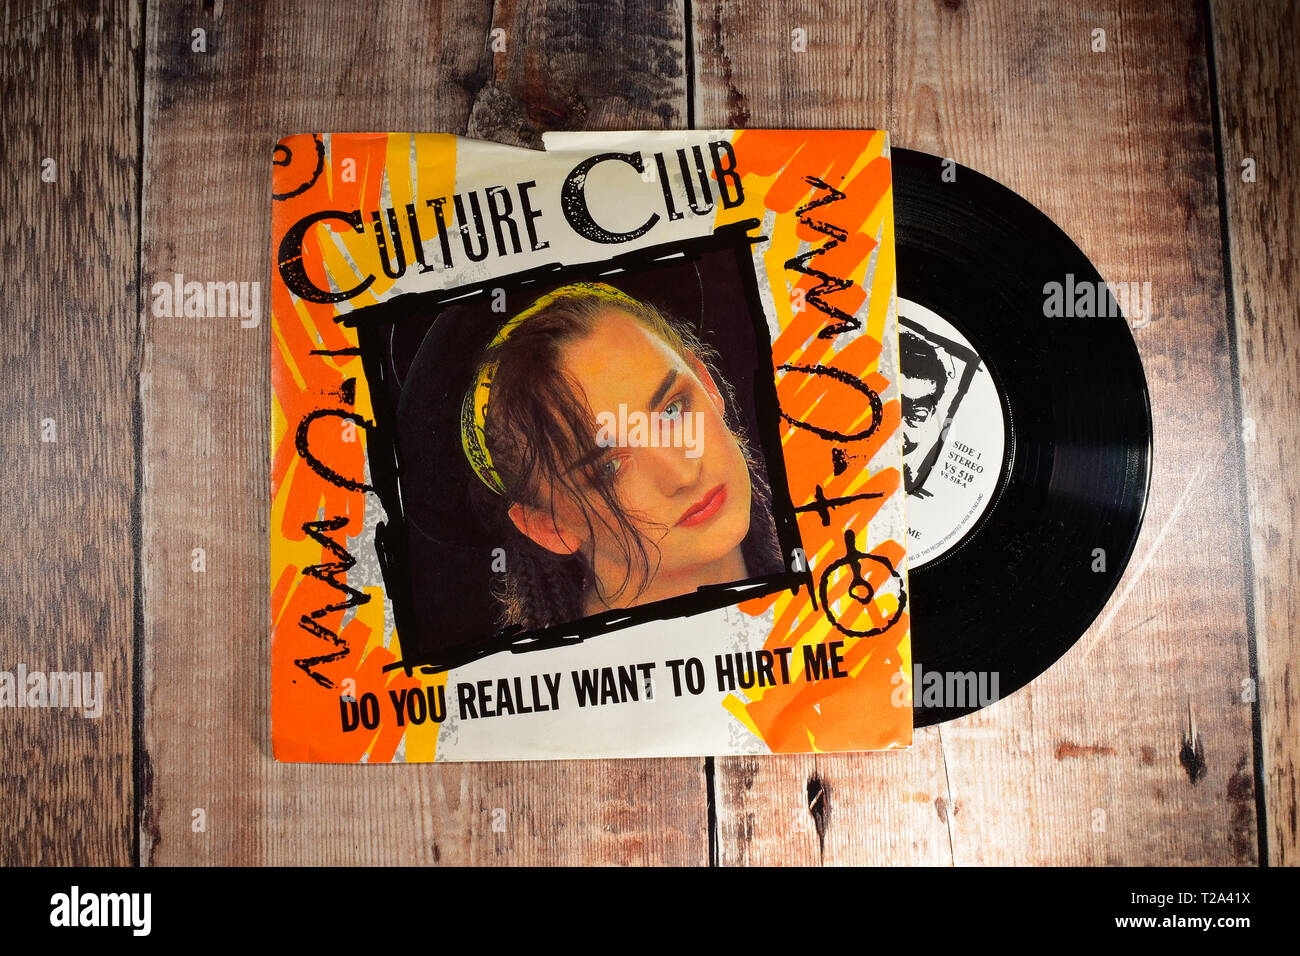 Culture Club 7inch single, Do you really want to hurt me - Stock Image